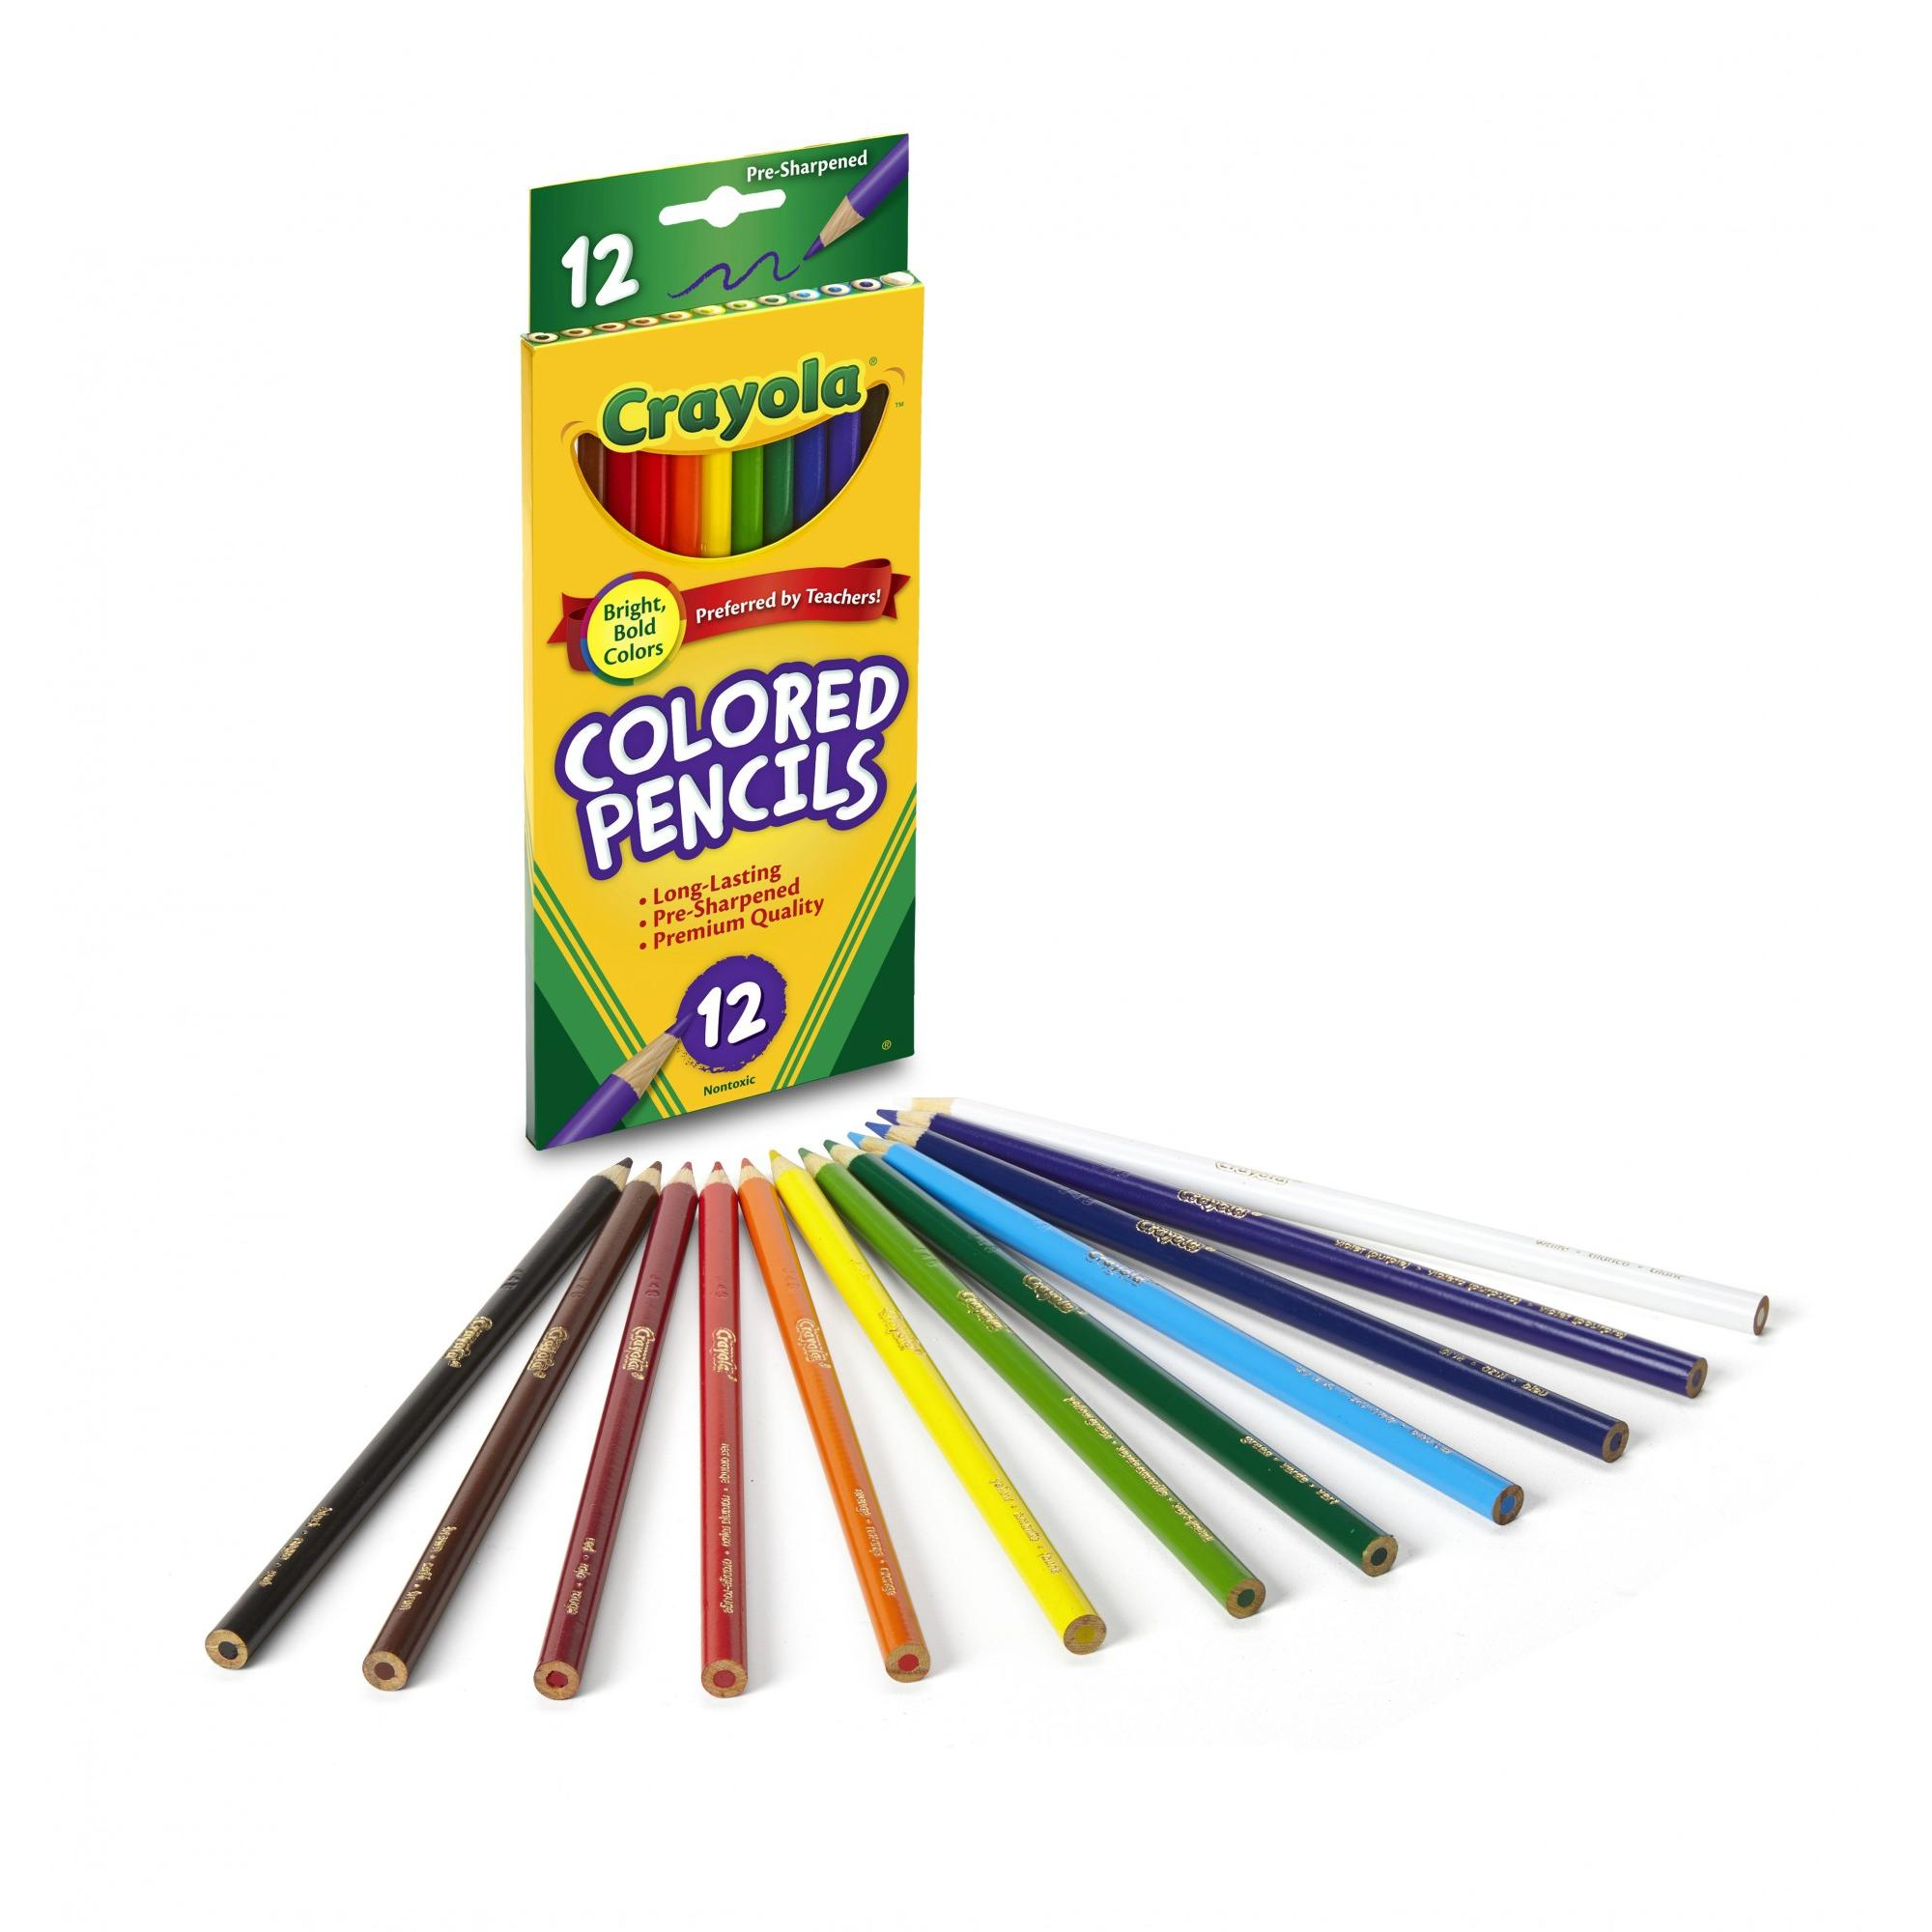 Crayola Classic Colored Pencils, 12 Count (Pack of 3)